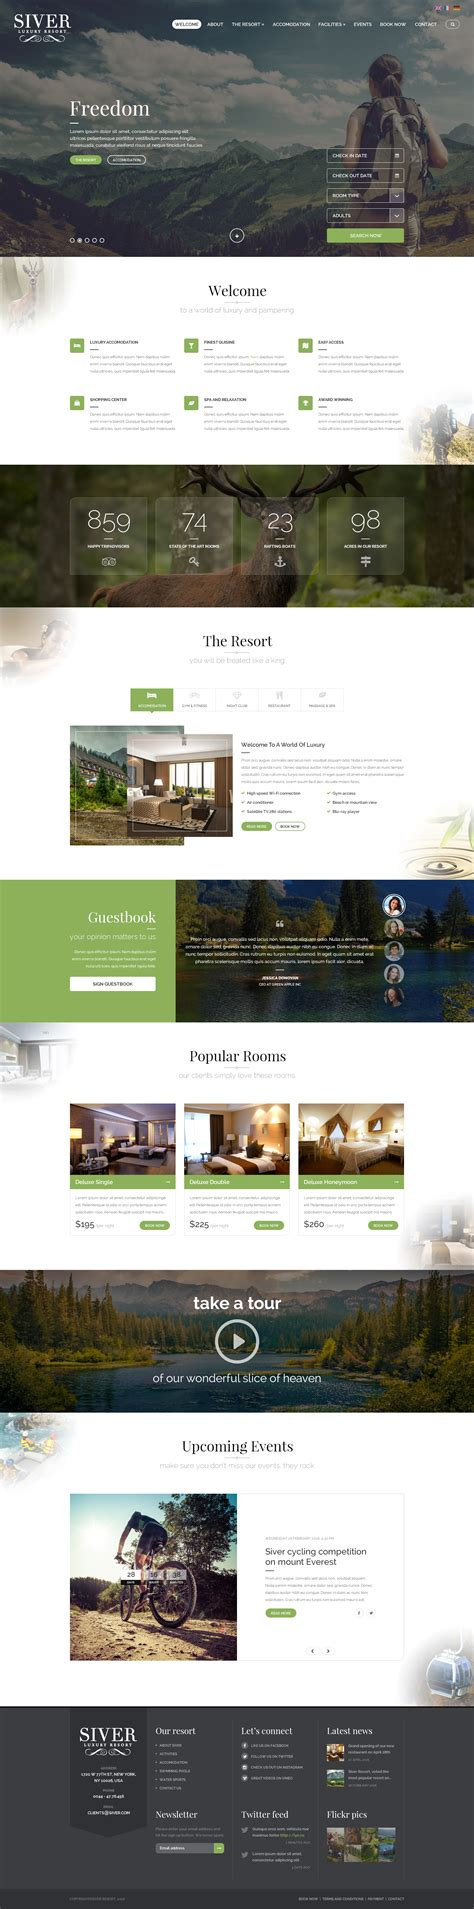 website template luxury hotels and carousels on pinterest siver luxury resort psd template by ant farm themeforest